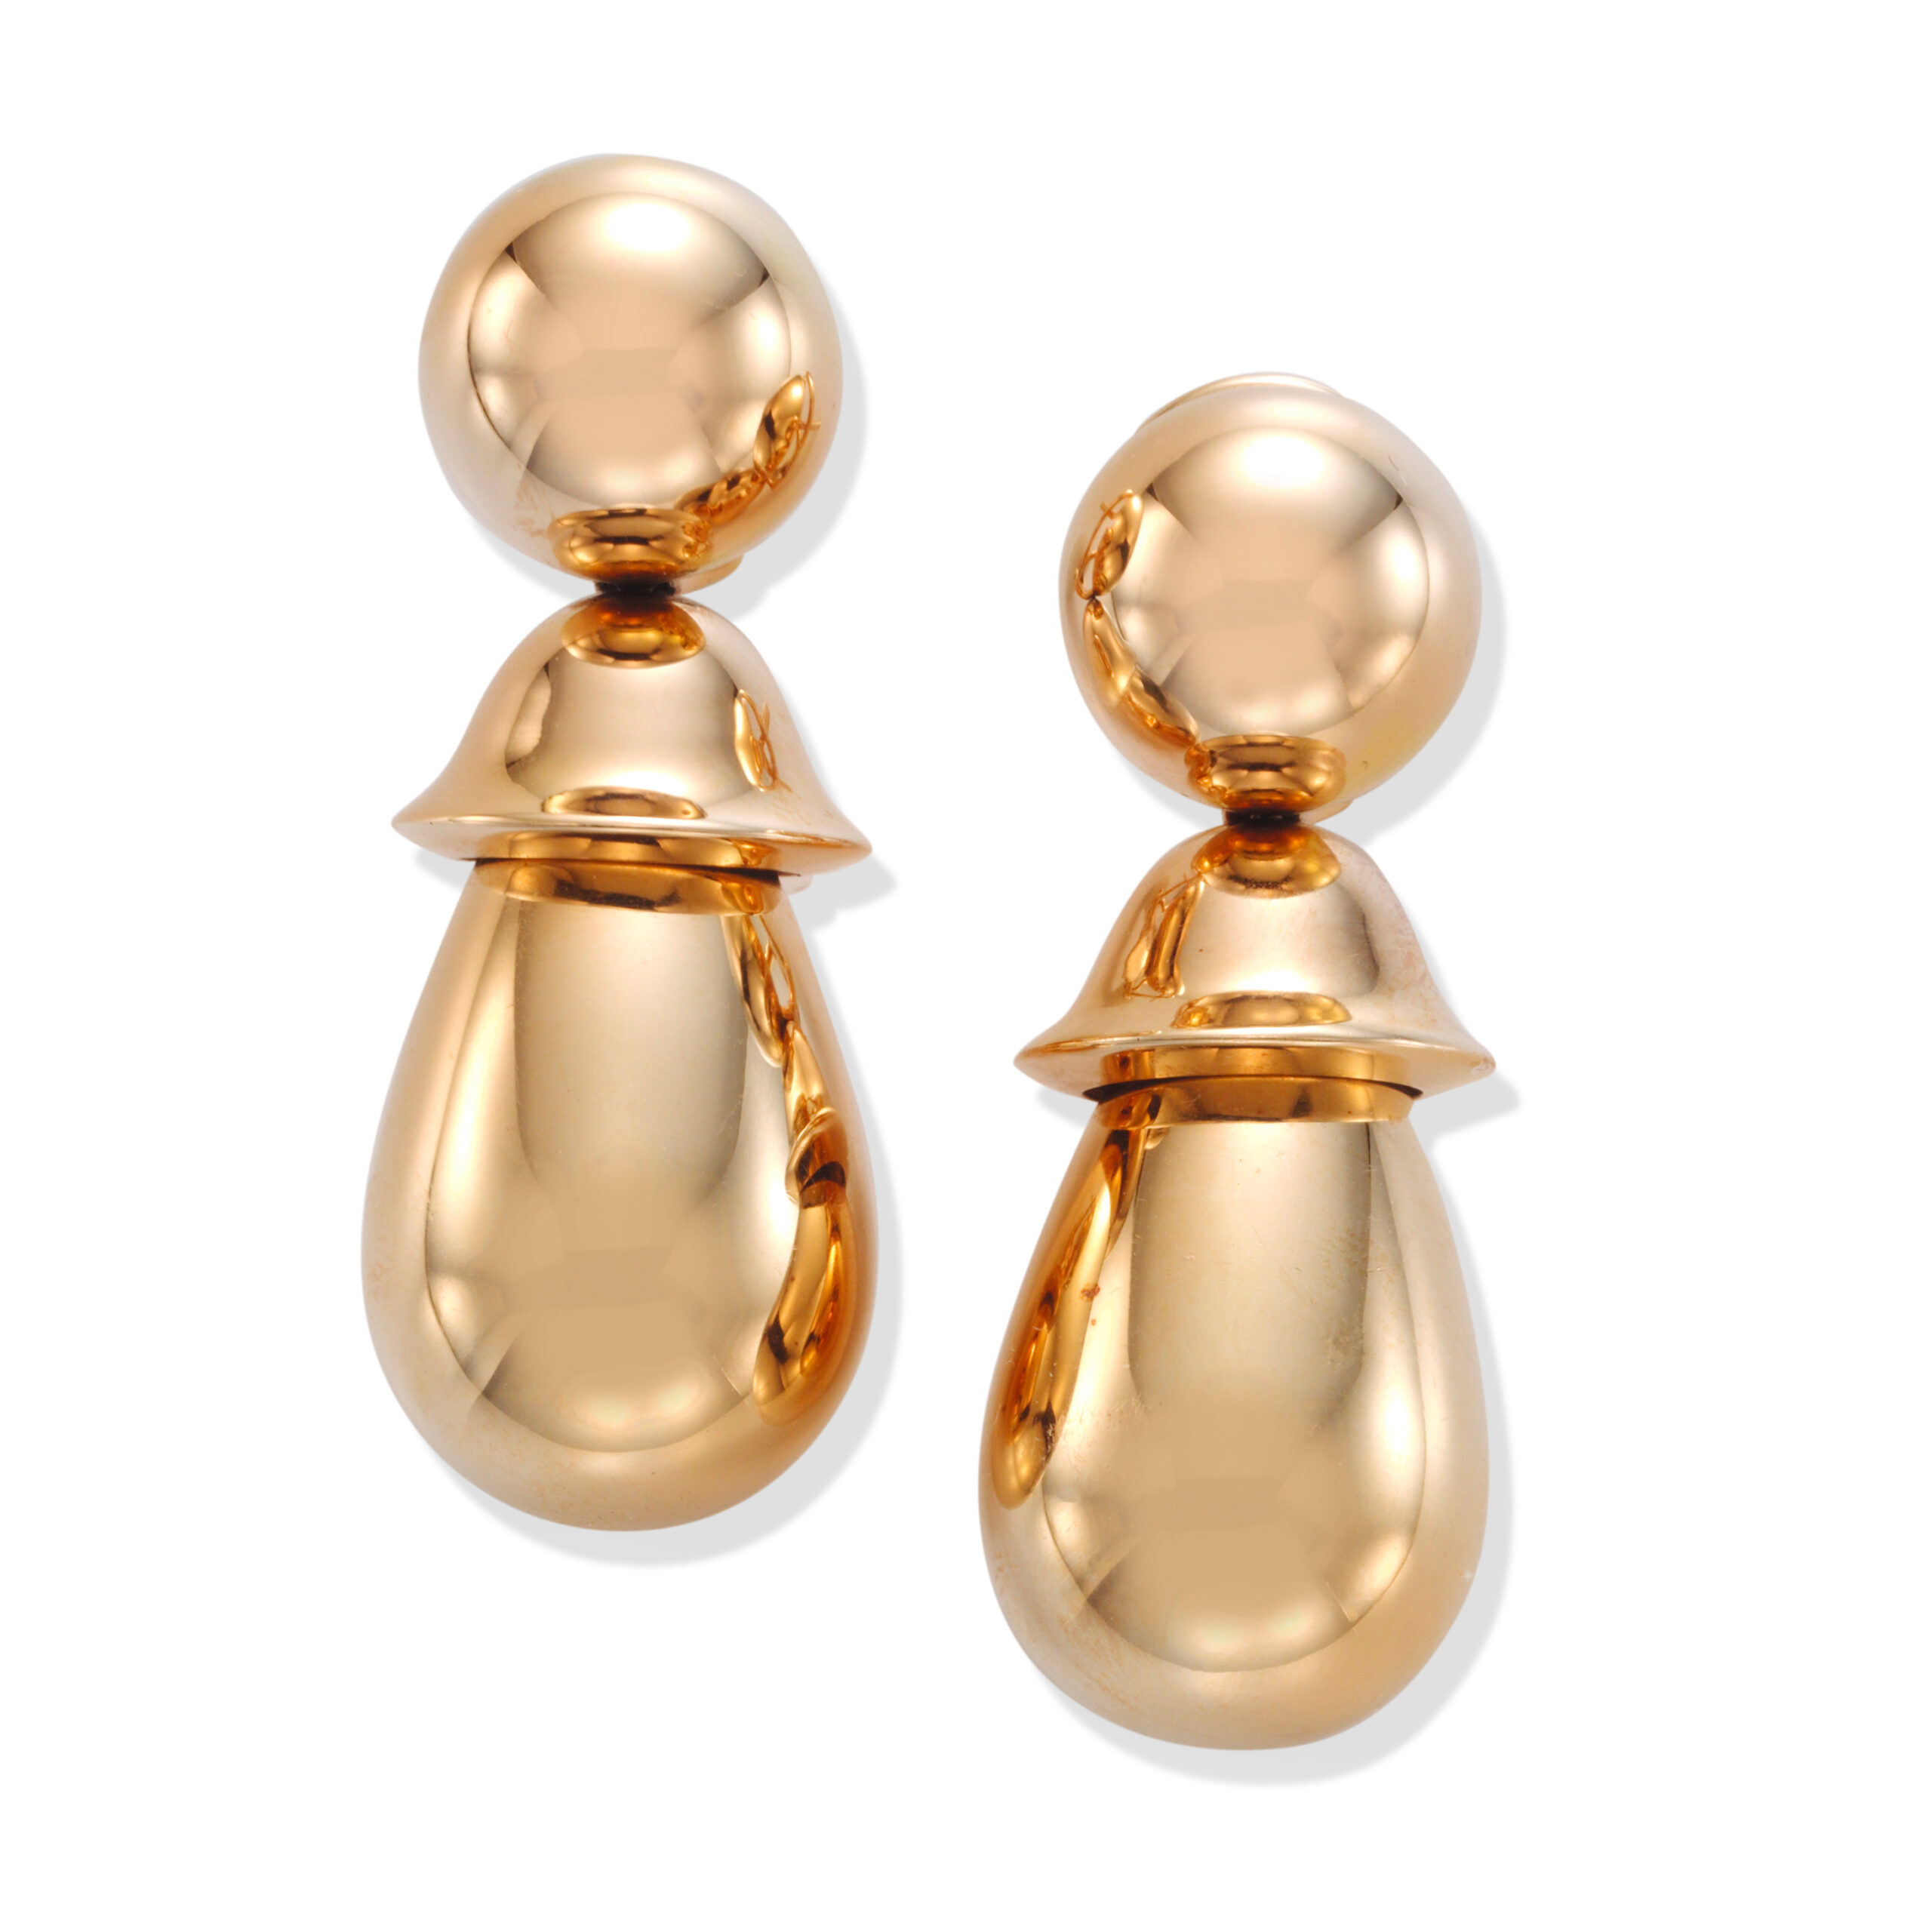 A Pair of Rose Gold Ear Pendants, by Hemmerle